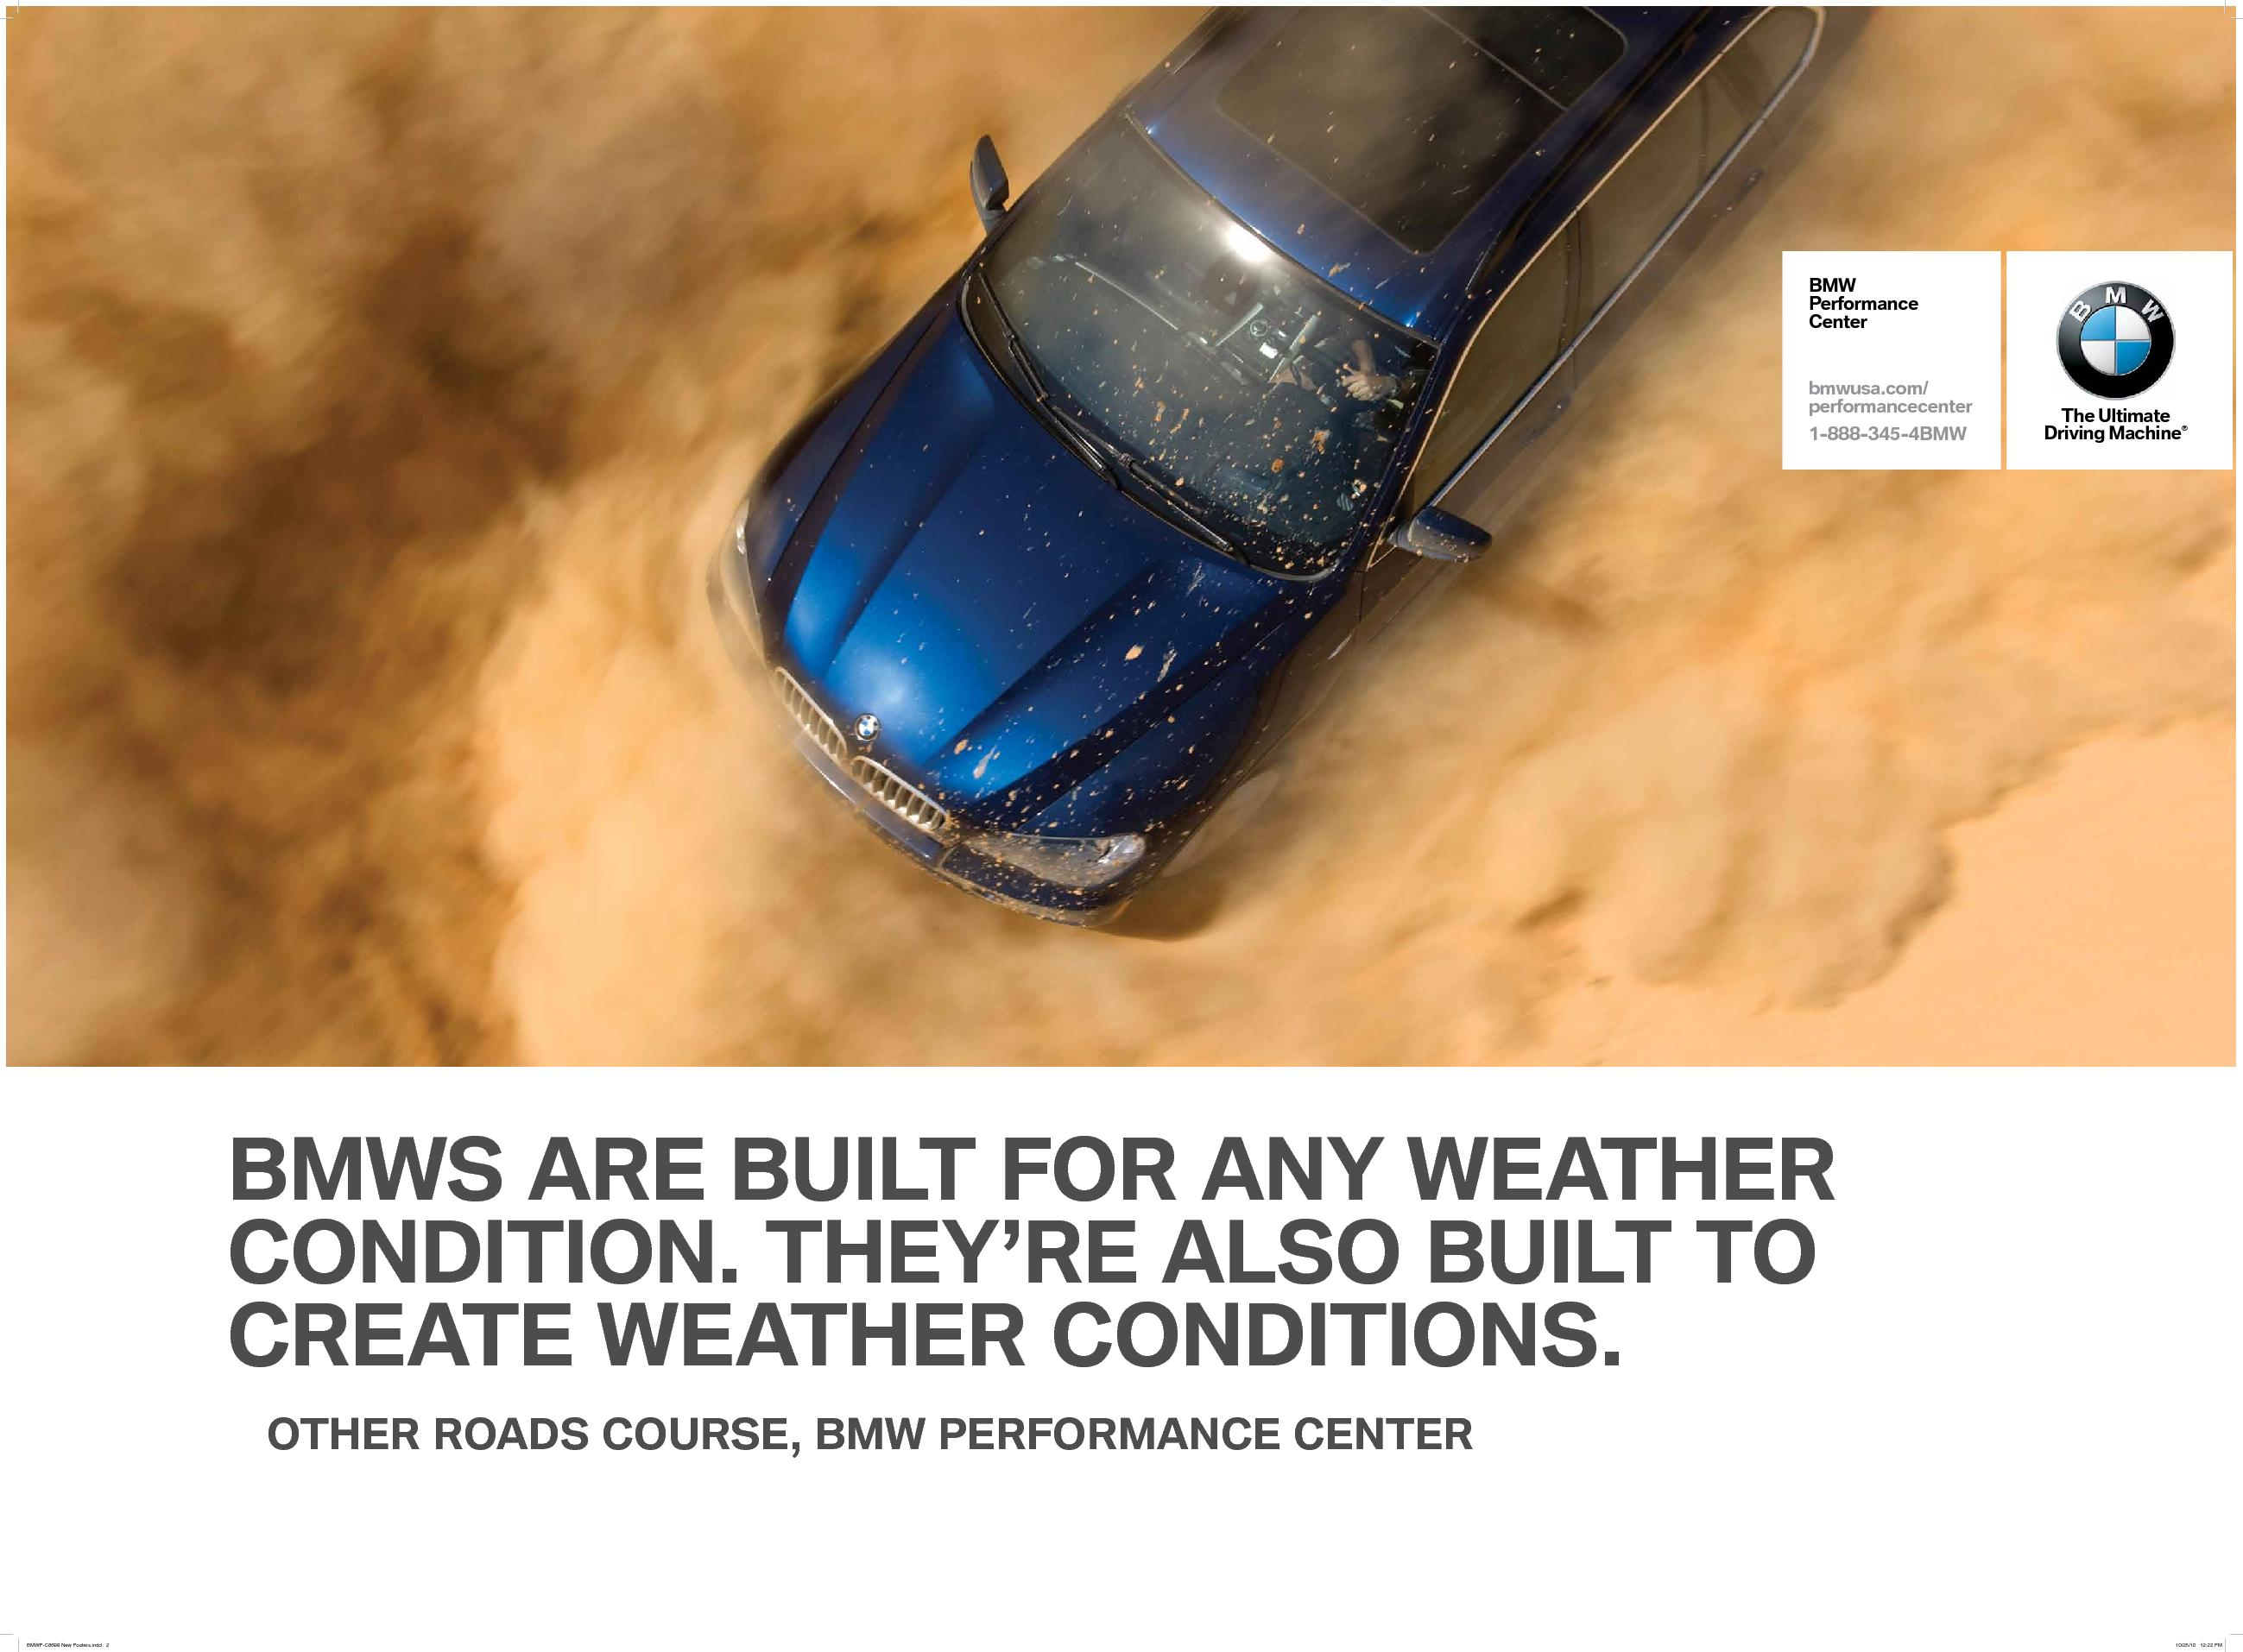 BMW-Performance-Center-advertising-copywriting-by-Lochness-Marketing-greenville-weather-conditions